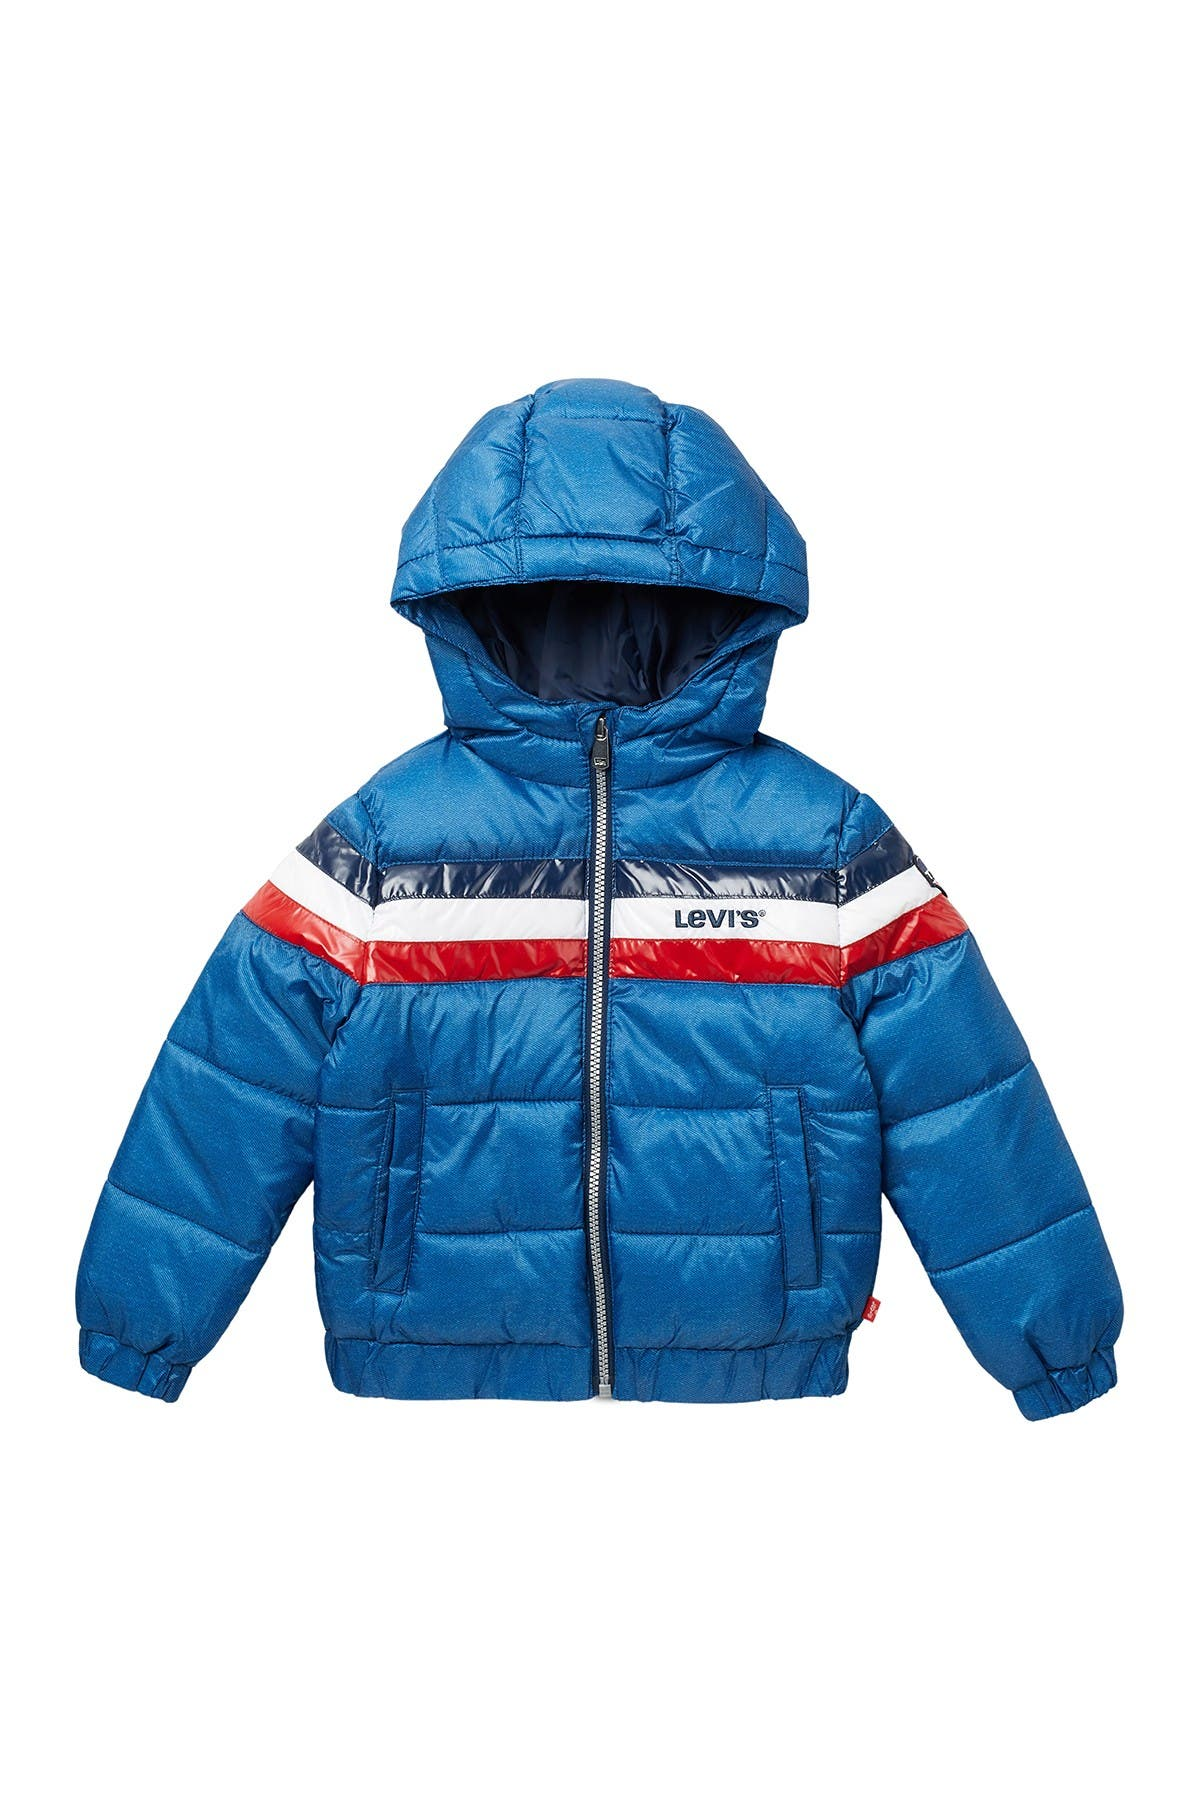 Image of Levi's Colorblock Stripe Hooded Puffer Jacket